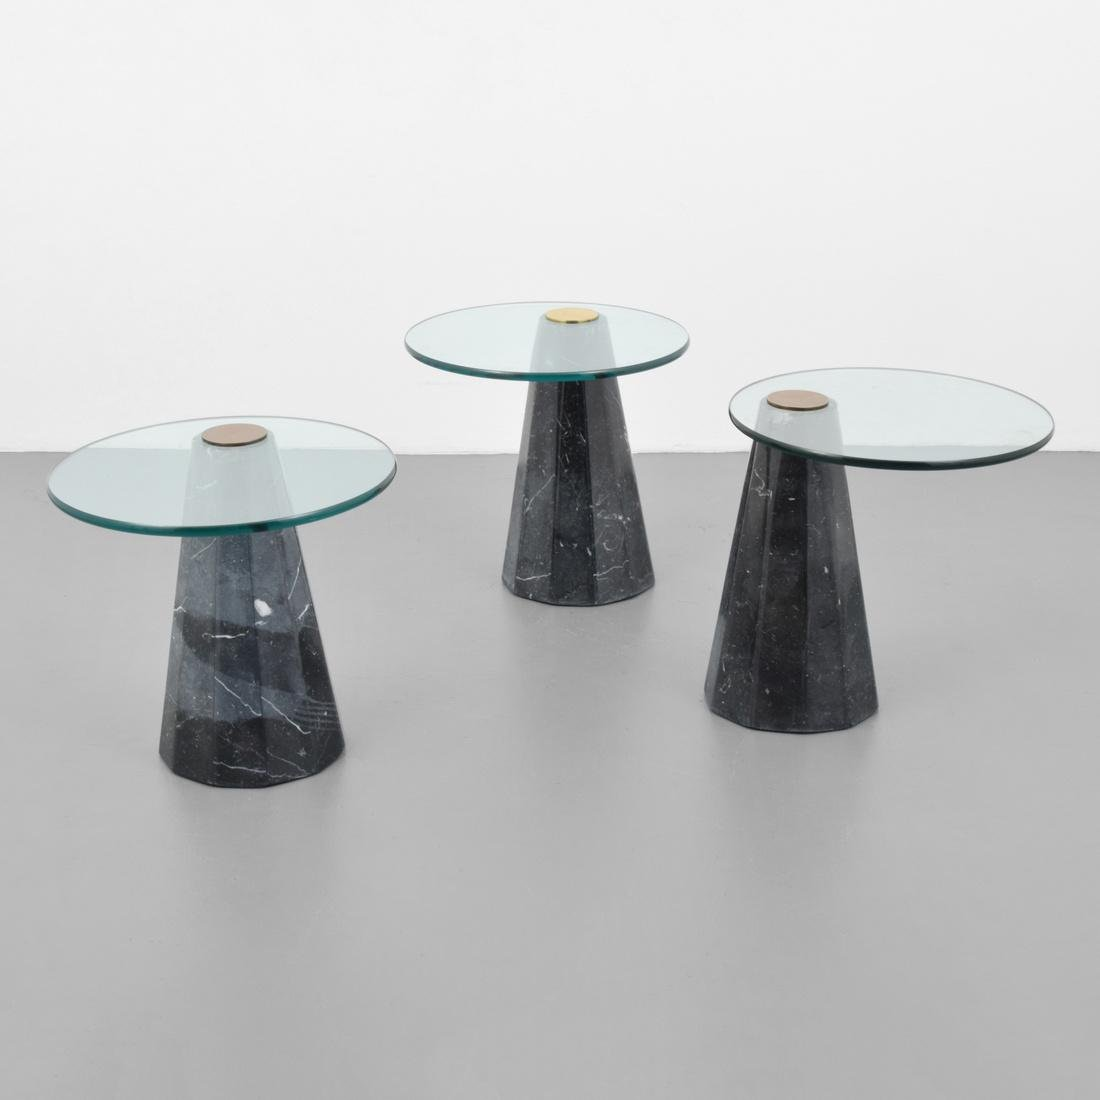 Set of 3 Side Tables, Manner of Angelo Mangiarotti